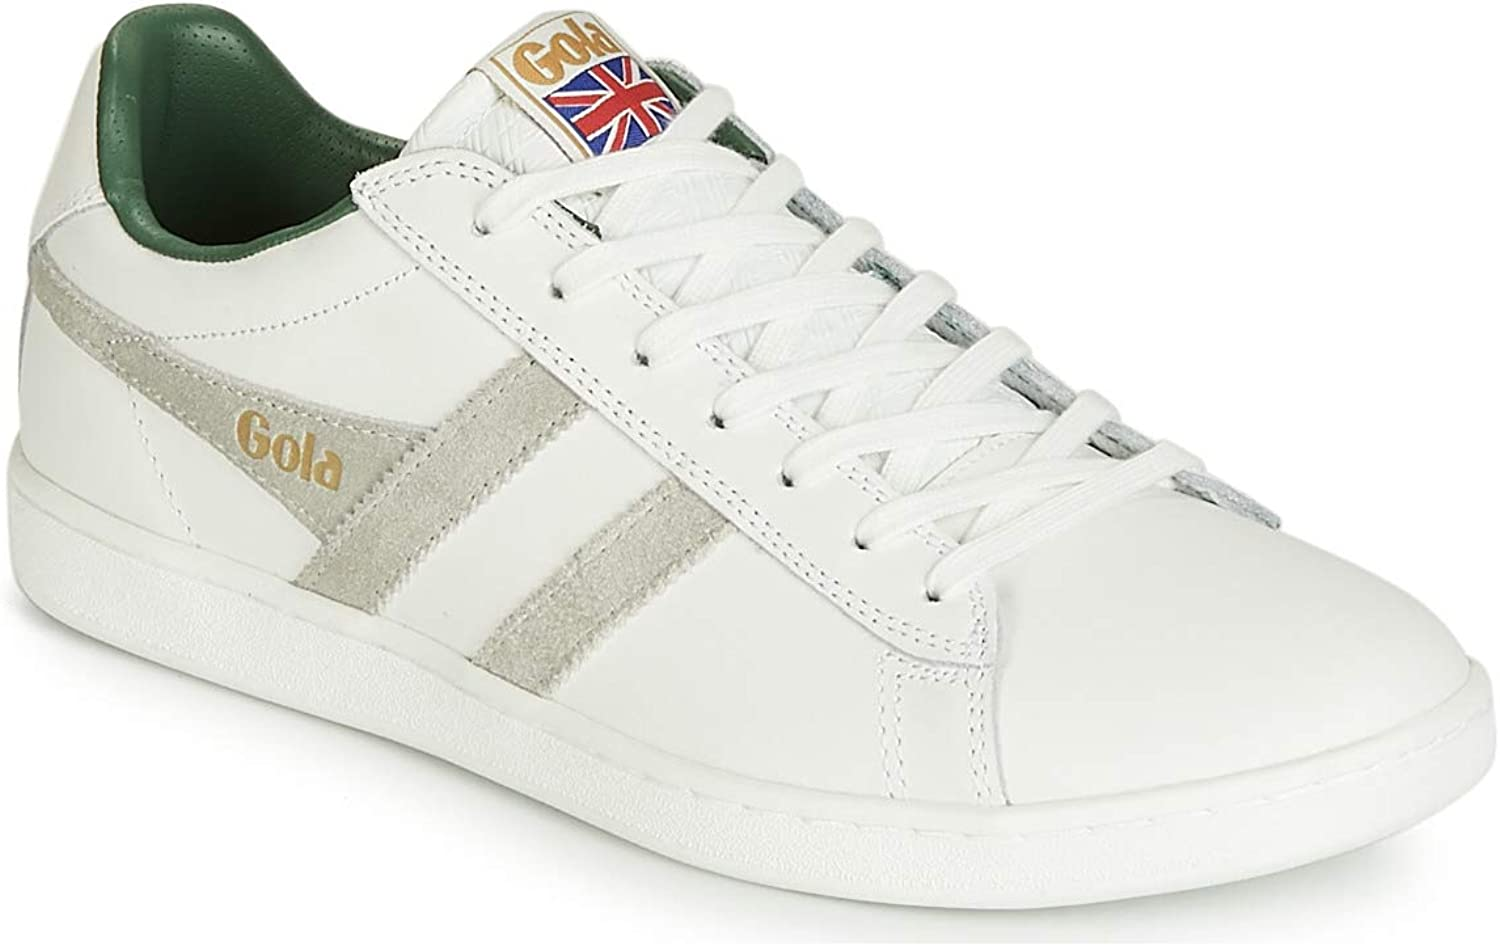 Gola Men's Equipe Mesh Sneakers   White Green White